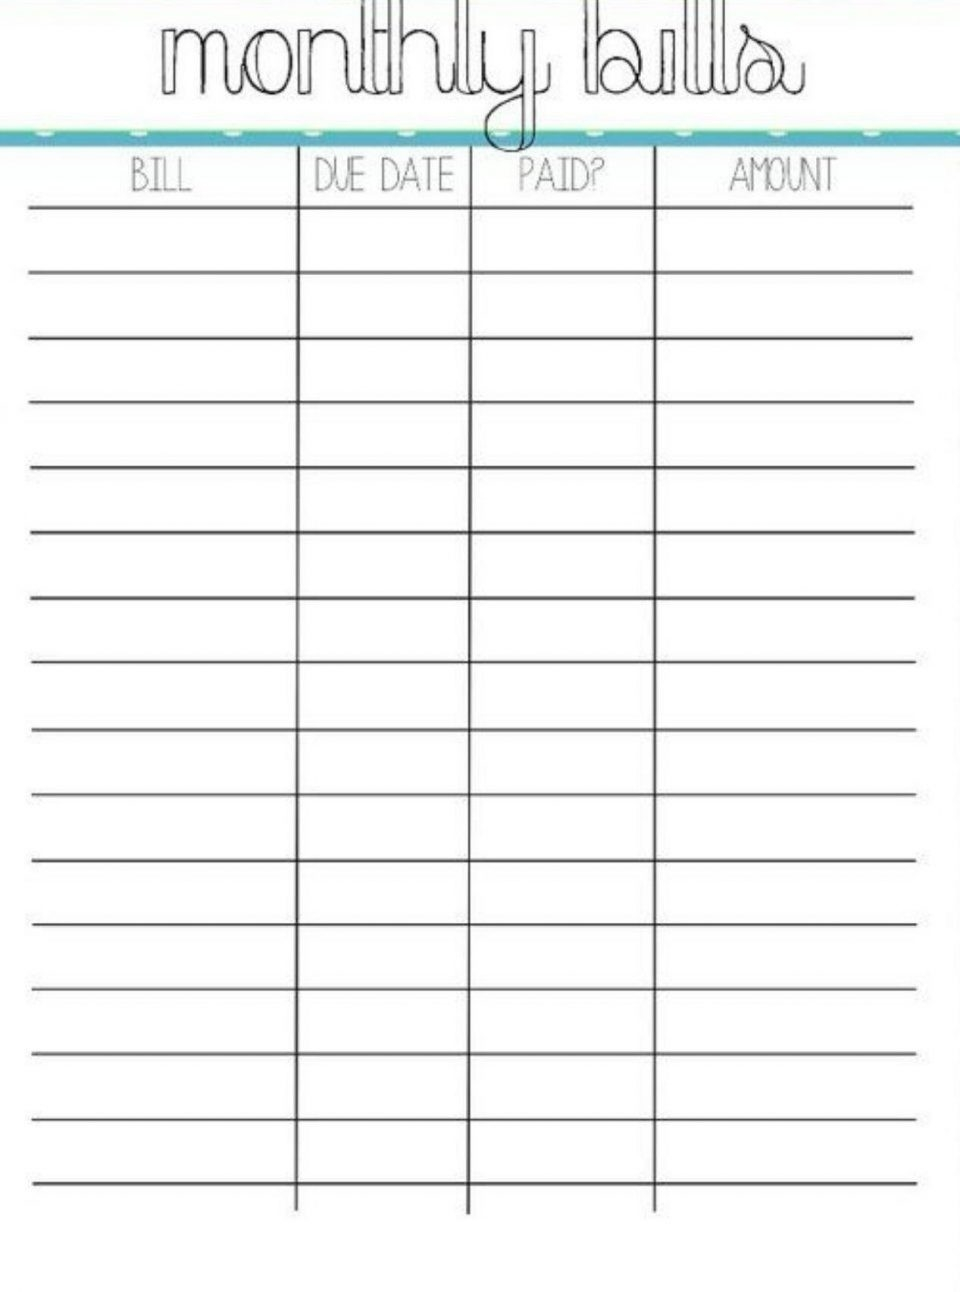 Monthly Bill Sample With Free Printable Organizer Template-Monthly Bills Due List Printable